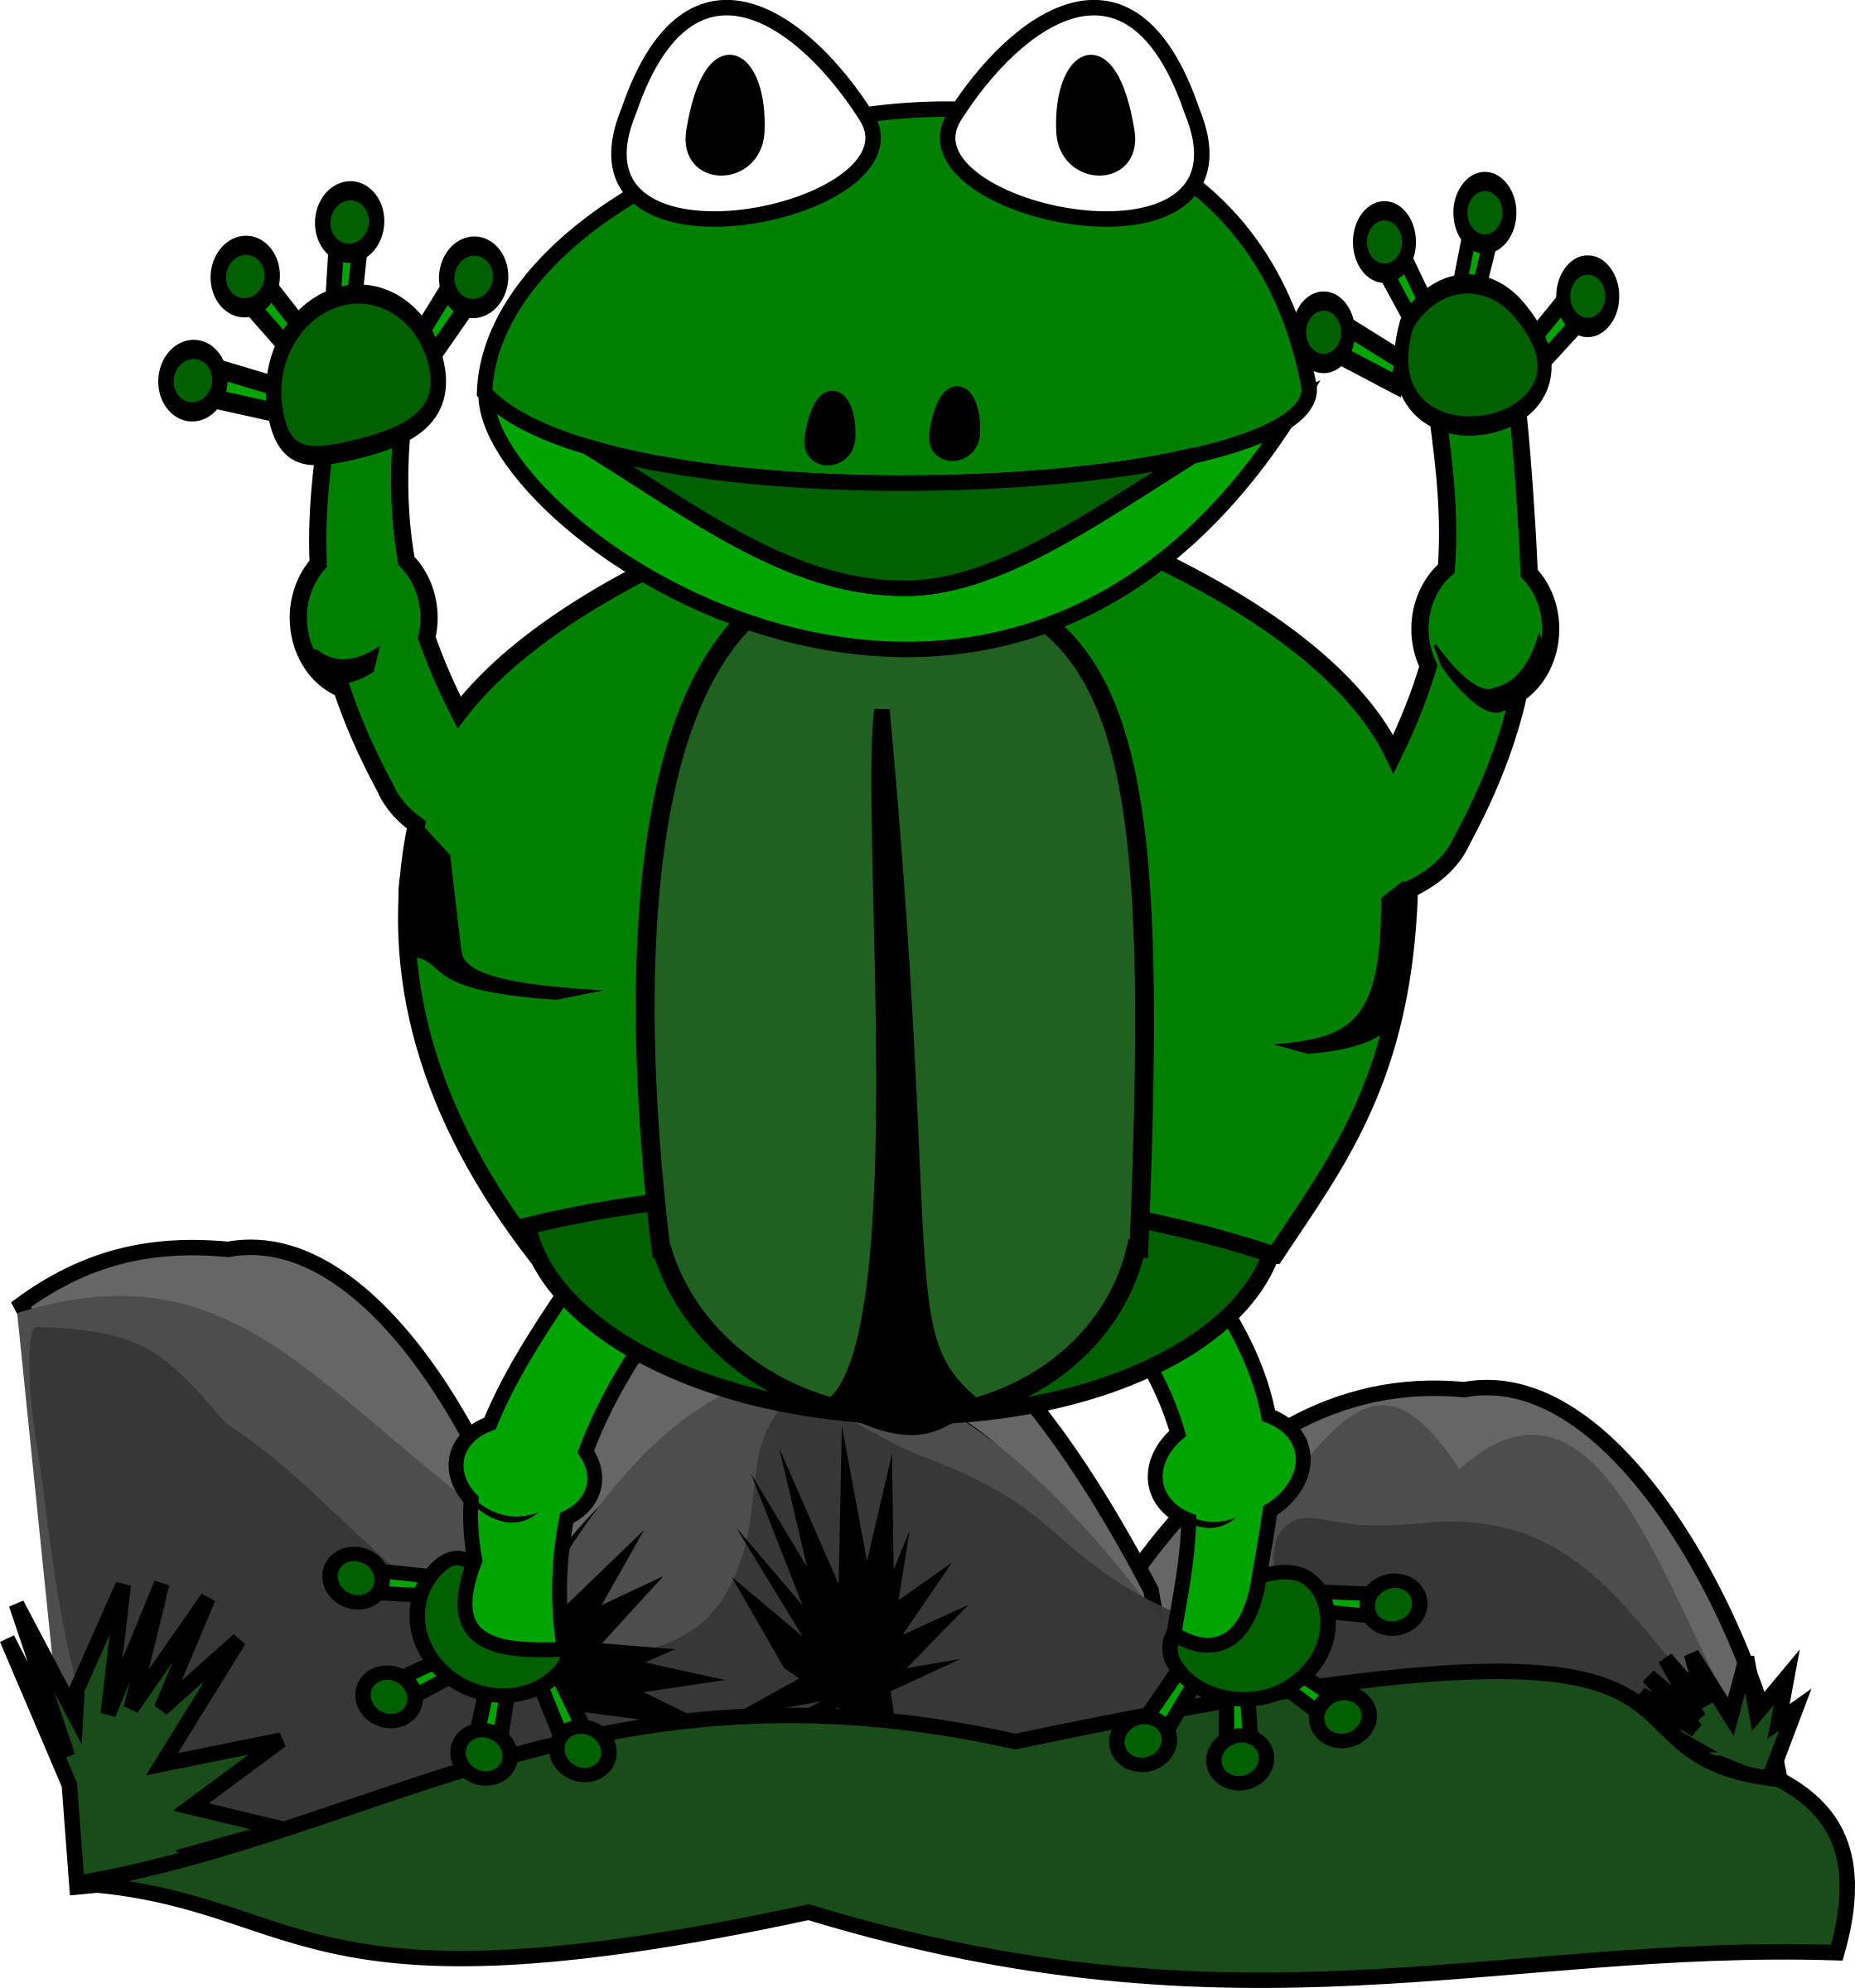 Frogs clipart sign. Jumping frog icons png